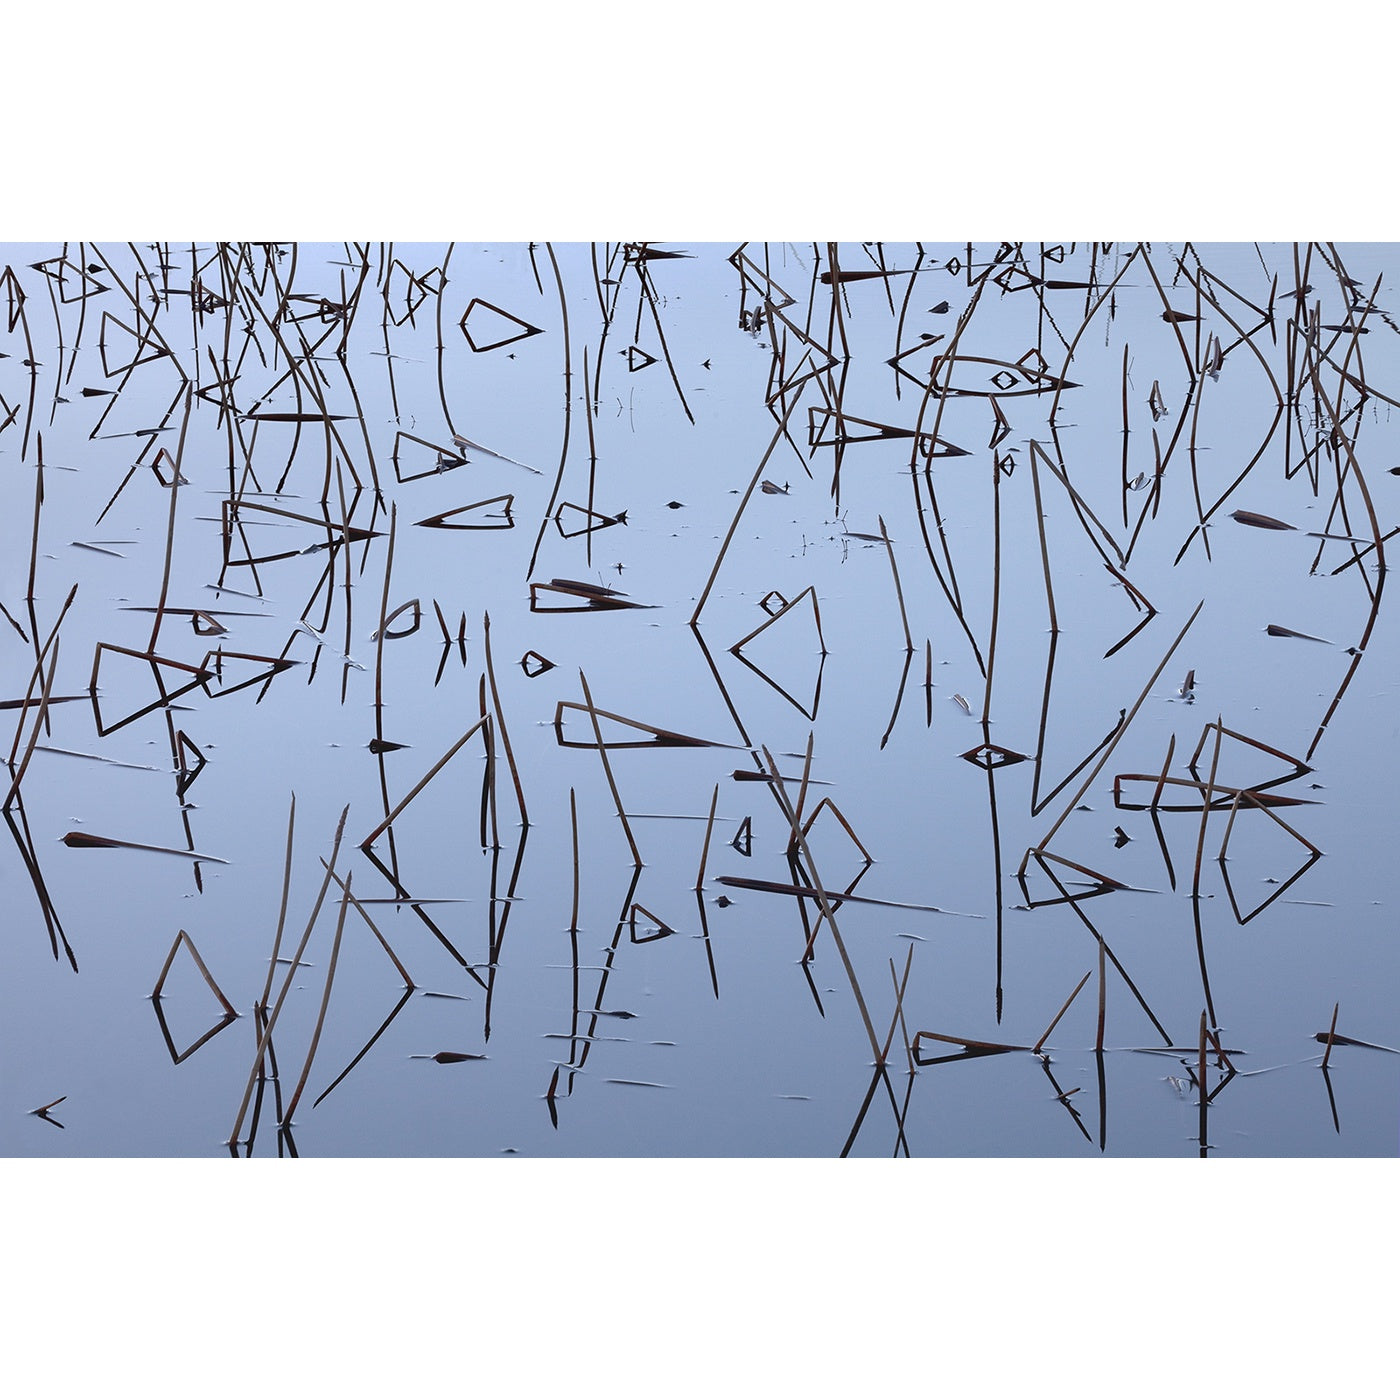 Chris Bell – Reeds and Reflections 2